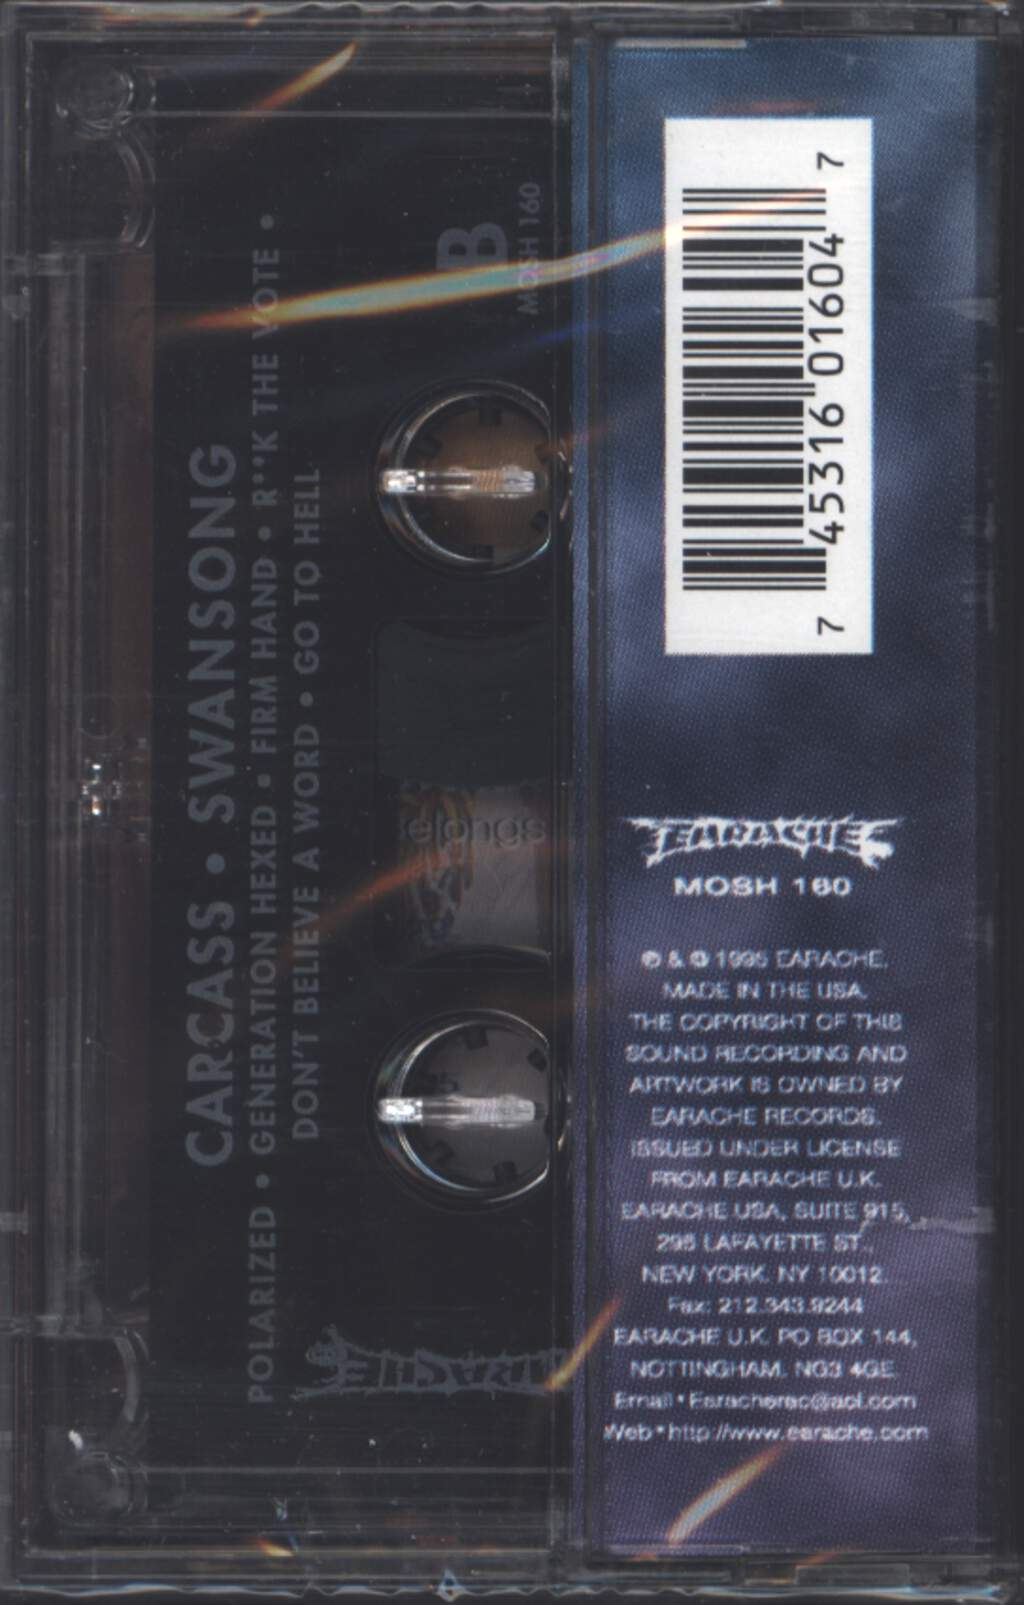 Carcass: Swansong, Tape